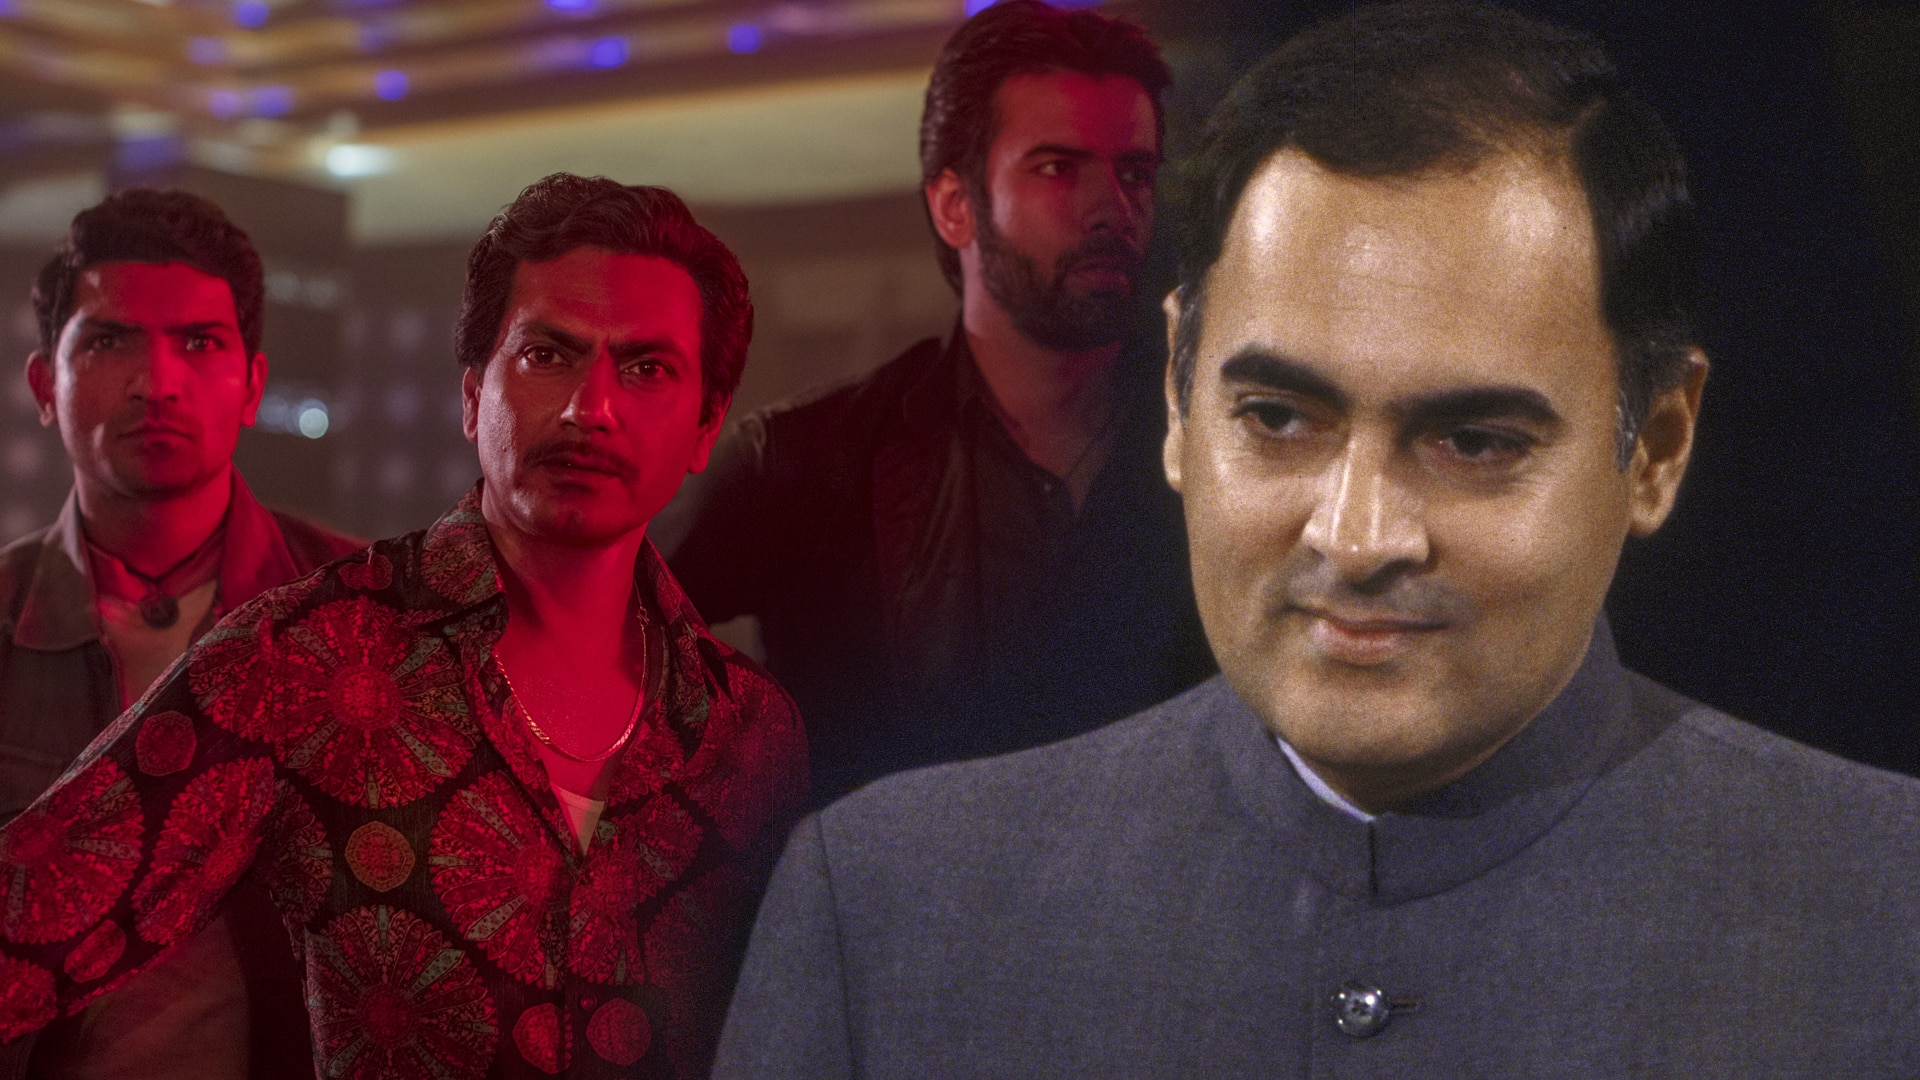 Sacred Games-Rajiv Gandhi case: Actors not responsible for insulting dialogues, says HC